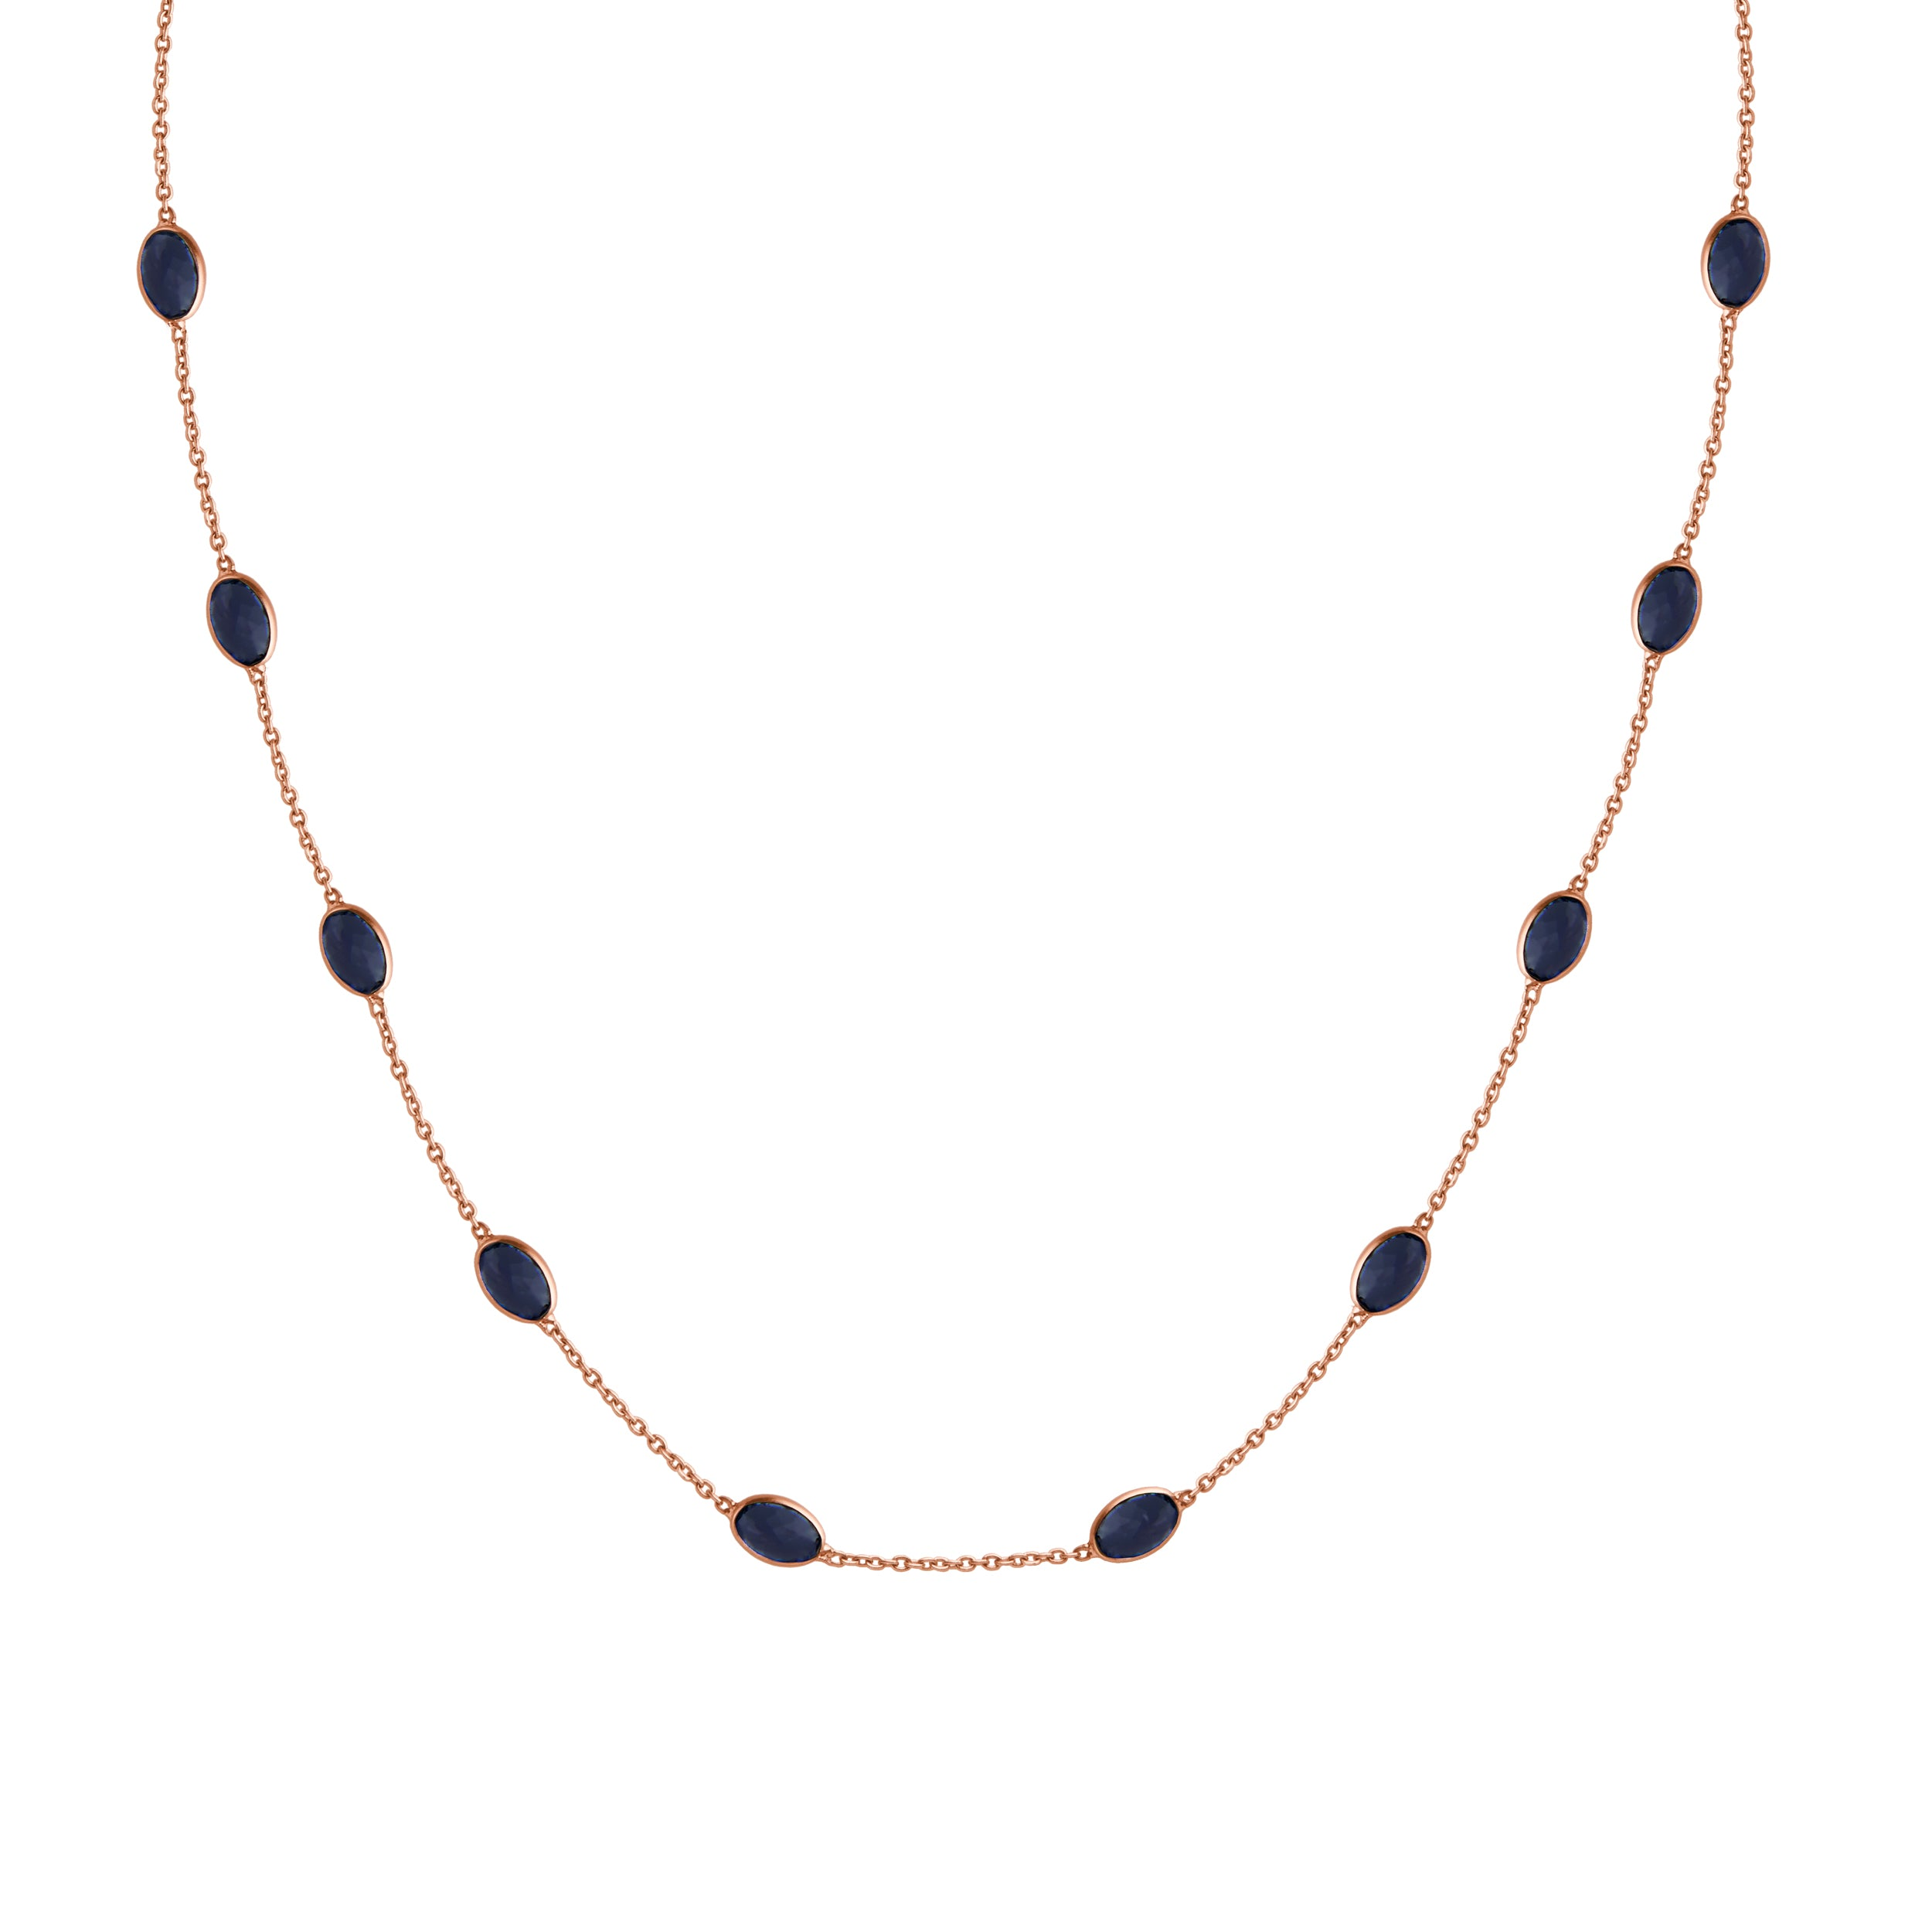 Hepburn Necklace in Rose Gold with Sapphire